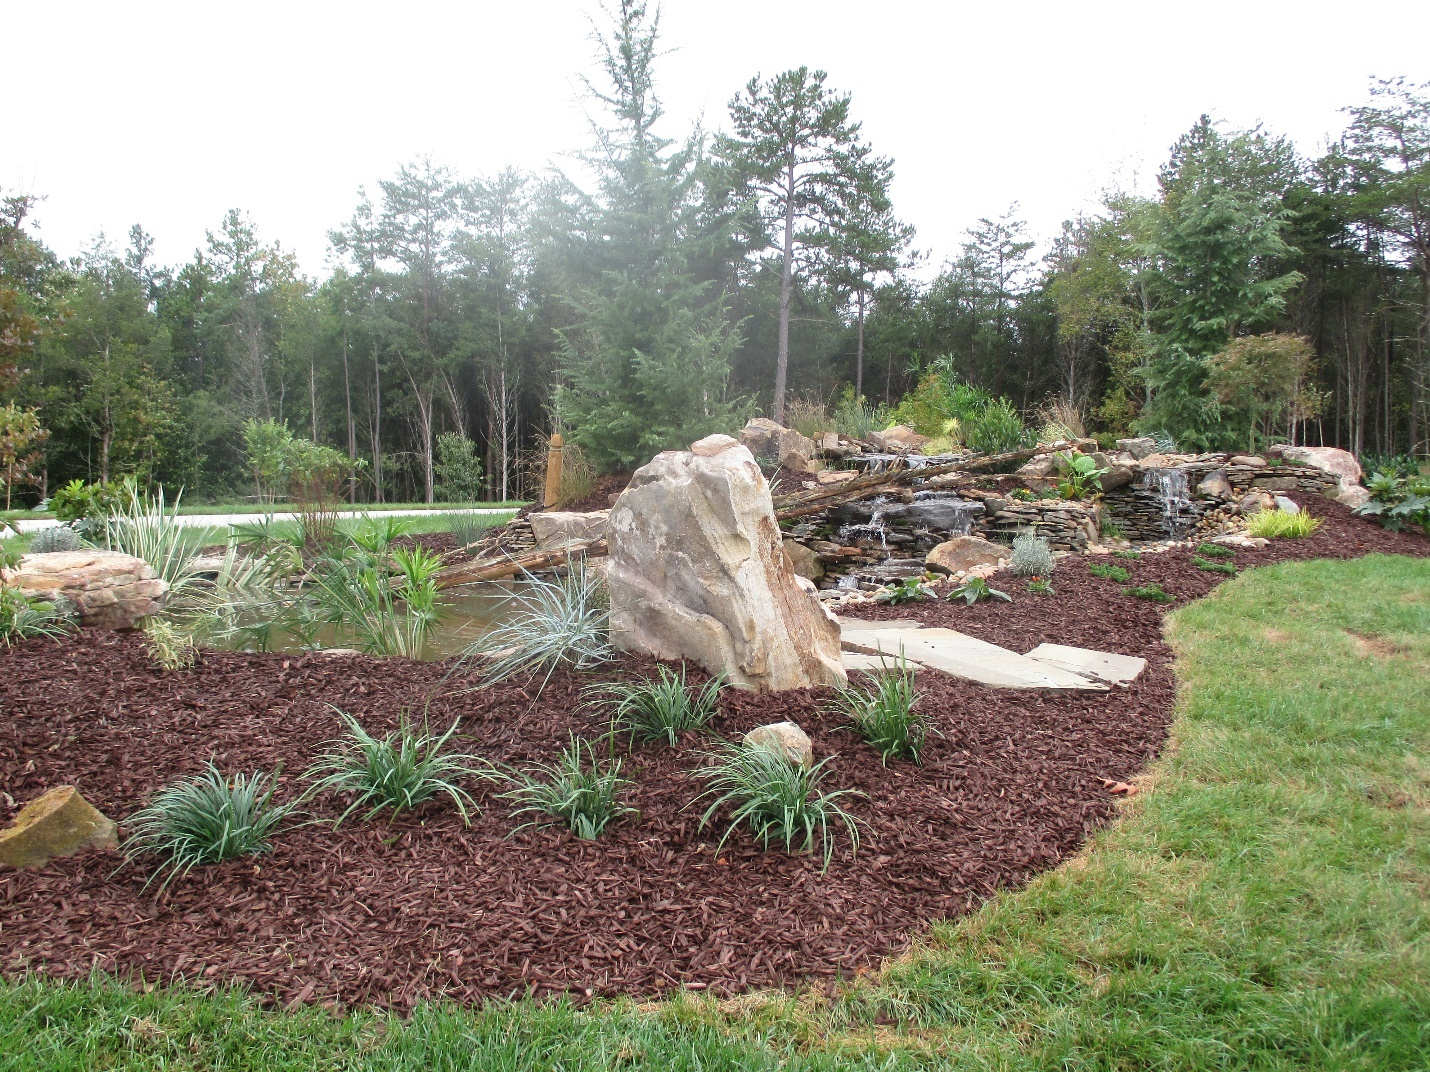 Top landscapers in charlotte nc - Put Your Trust In An Experienced Landscaper